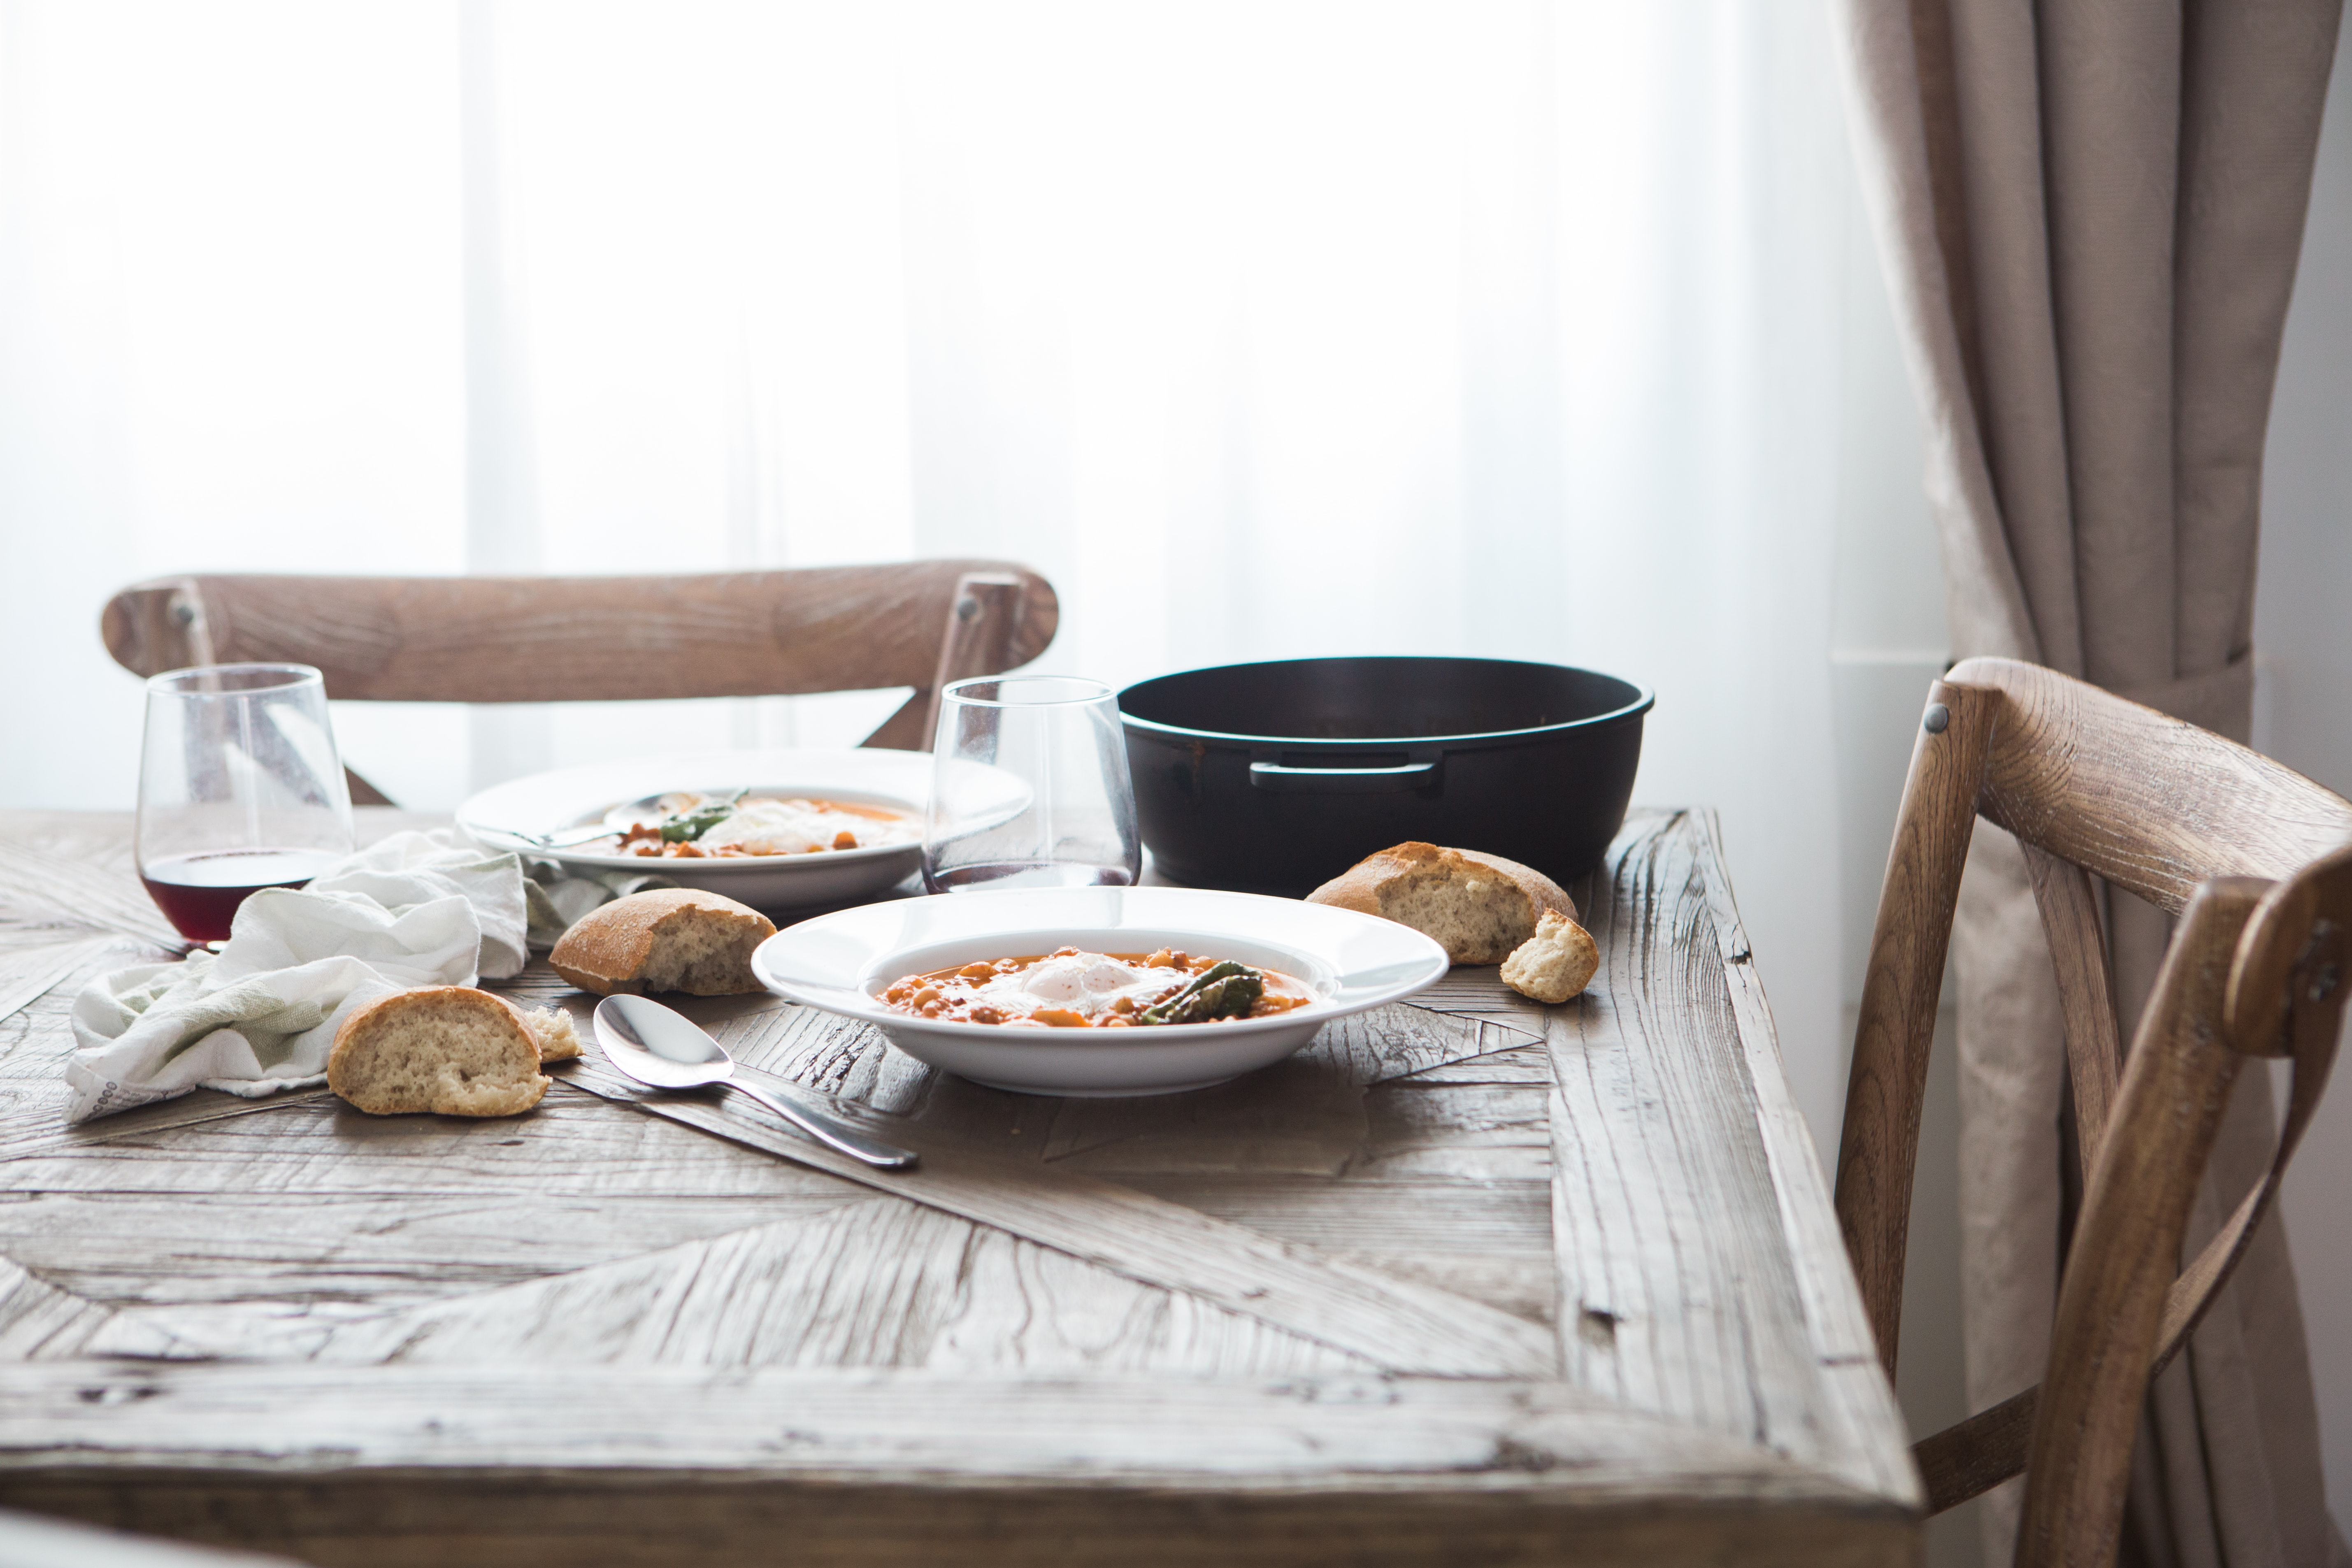 Two deep dishes with a hearty meal, pieces of bread and wine glasses on a wooden table